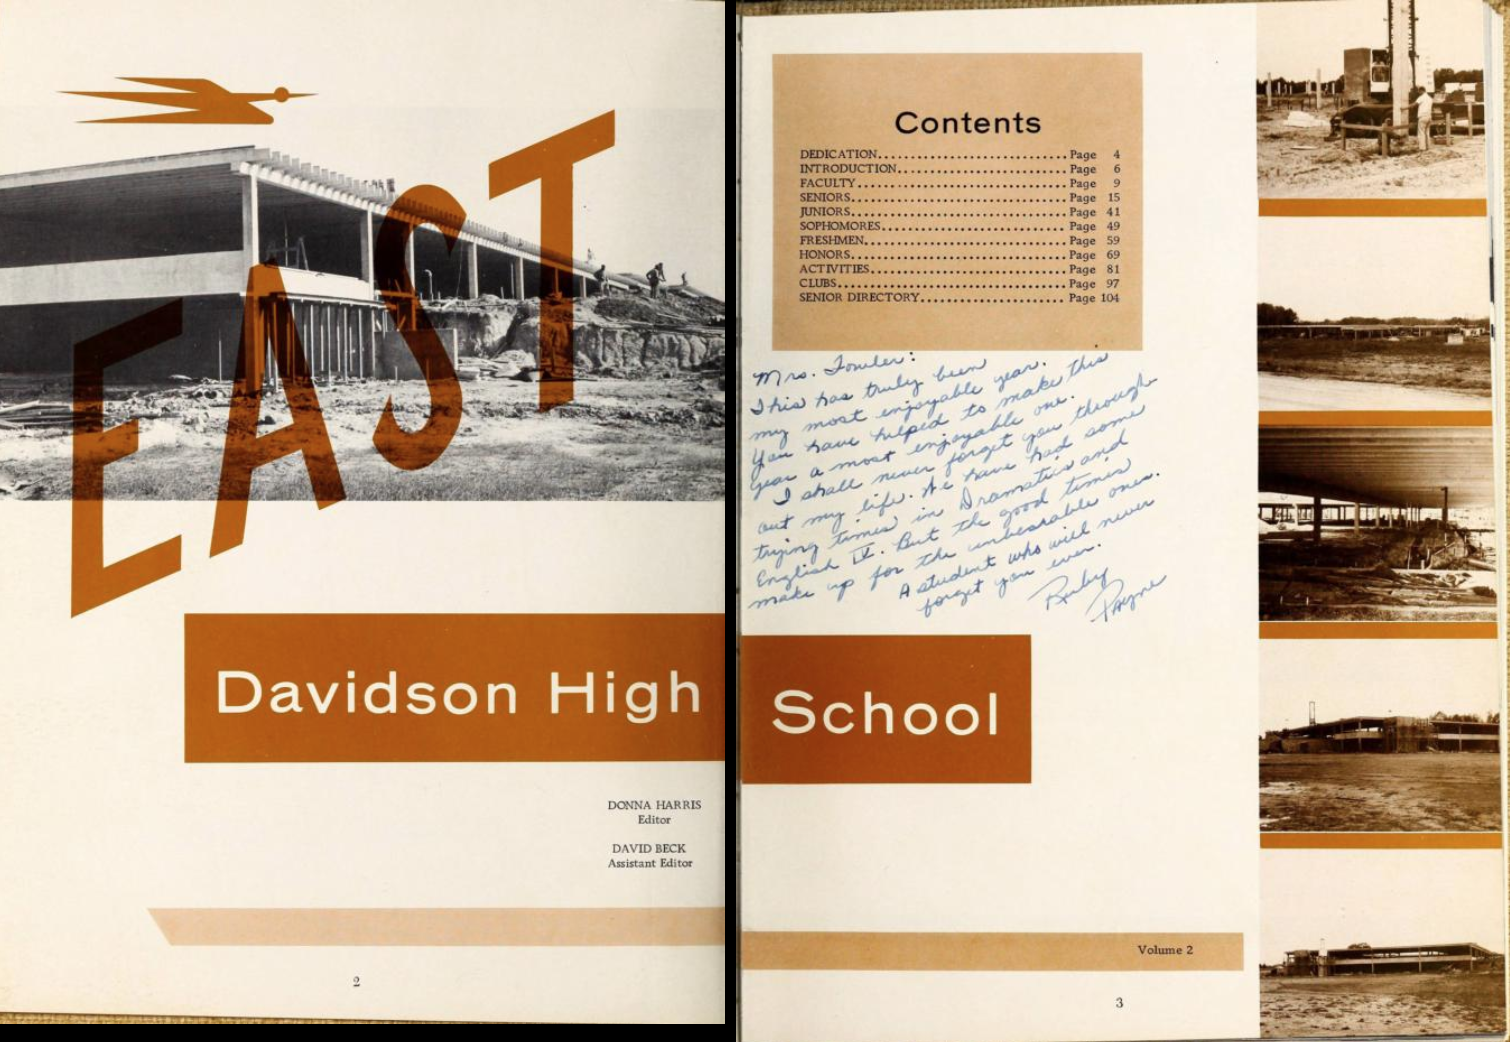 Two-page spread from the 1963 East Davidson High School yearbook The Claw. These pages show the contents of the yearbook as well as artfully arranged photos of the construction of the new section of school. The page is colored in monochrome orange.